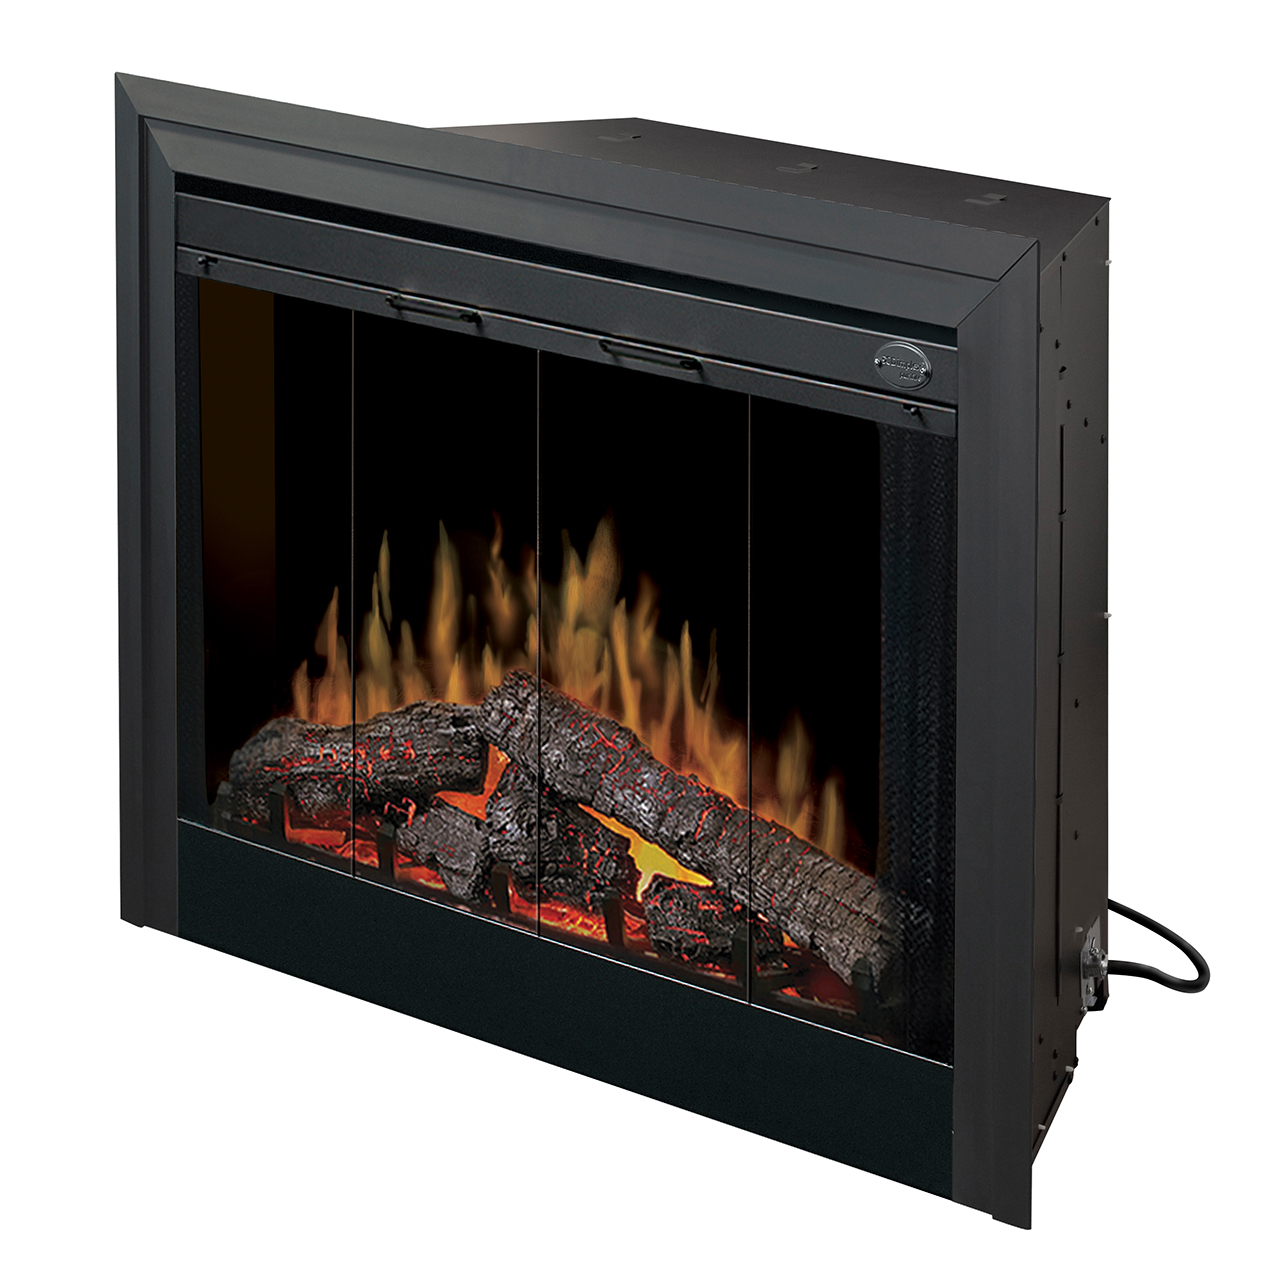 39 Standard Built-in Electric Firebox